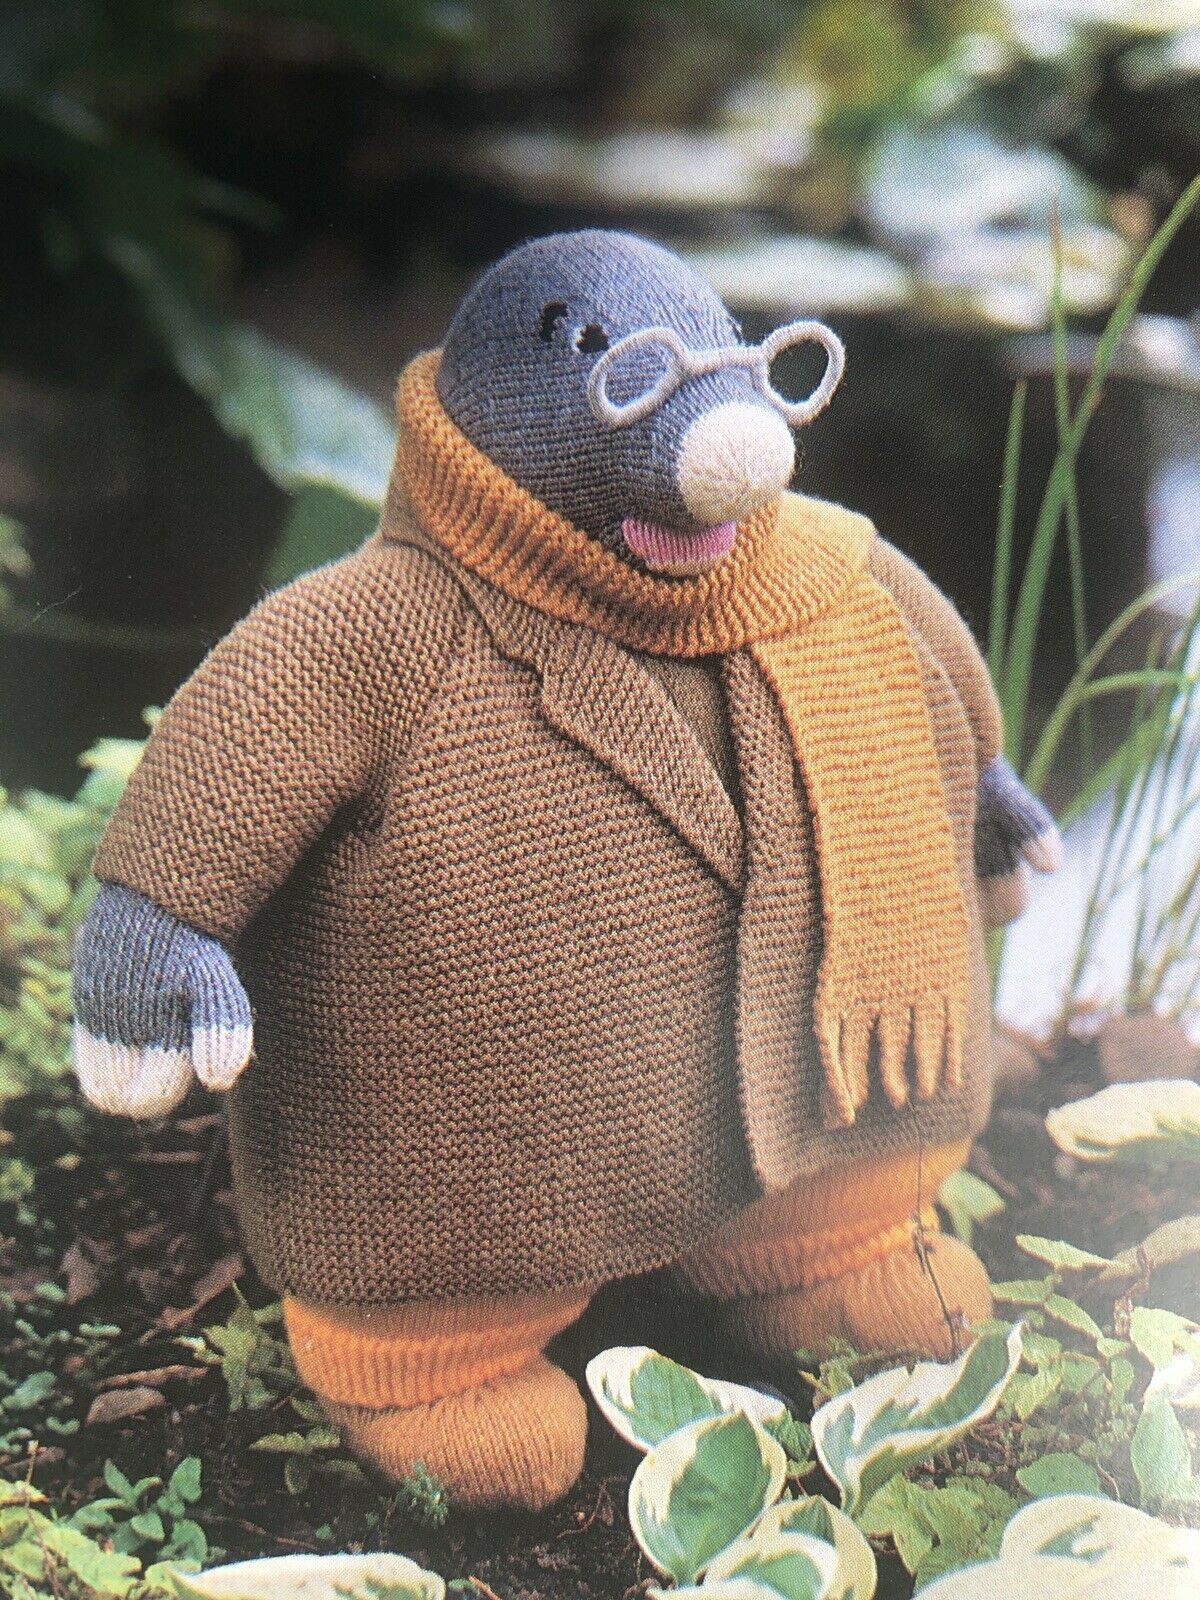 Ratty Mole Badger Toad Characters Wind in Willows Counted Cross Stitch Pattern